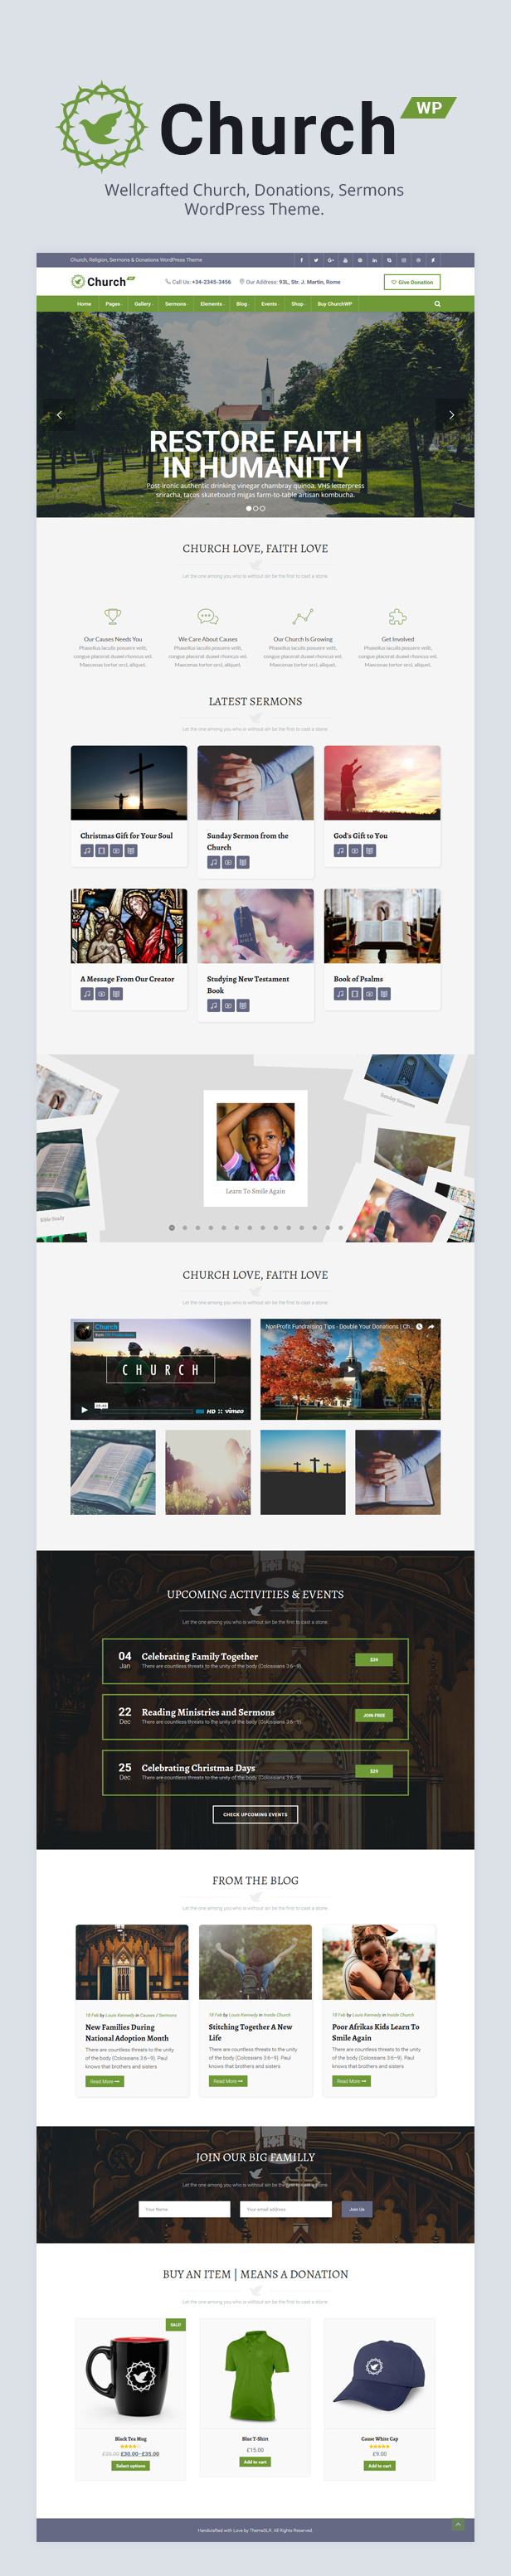 ChurchWP - A Contemporary WordPress Theme for Churches - 3